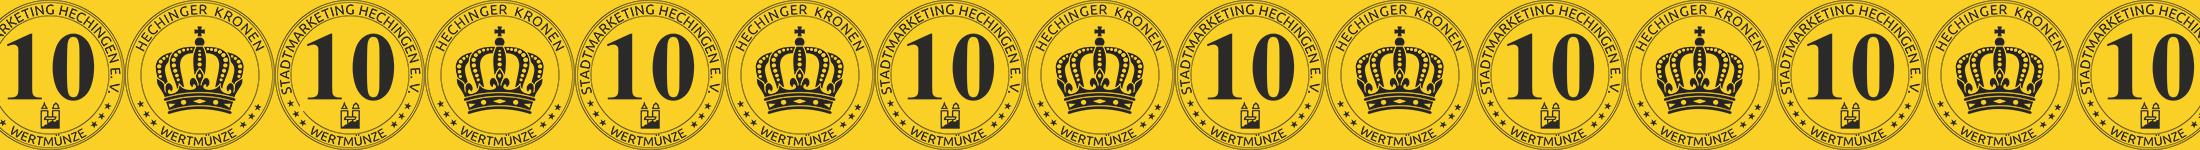 Hechinger_Kronen_Stadtmarketing_Homepage